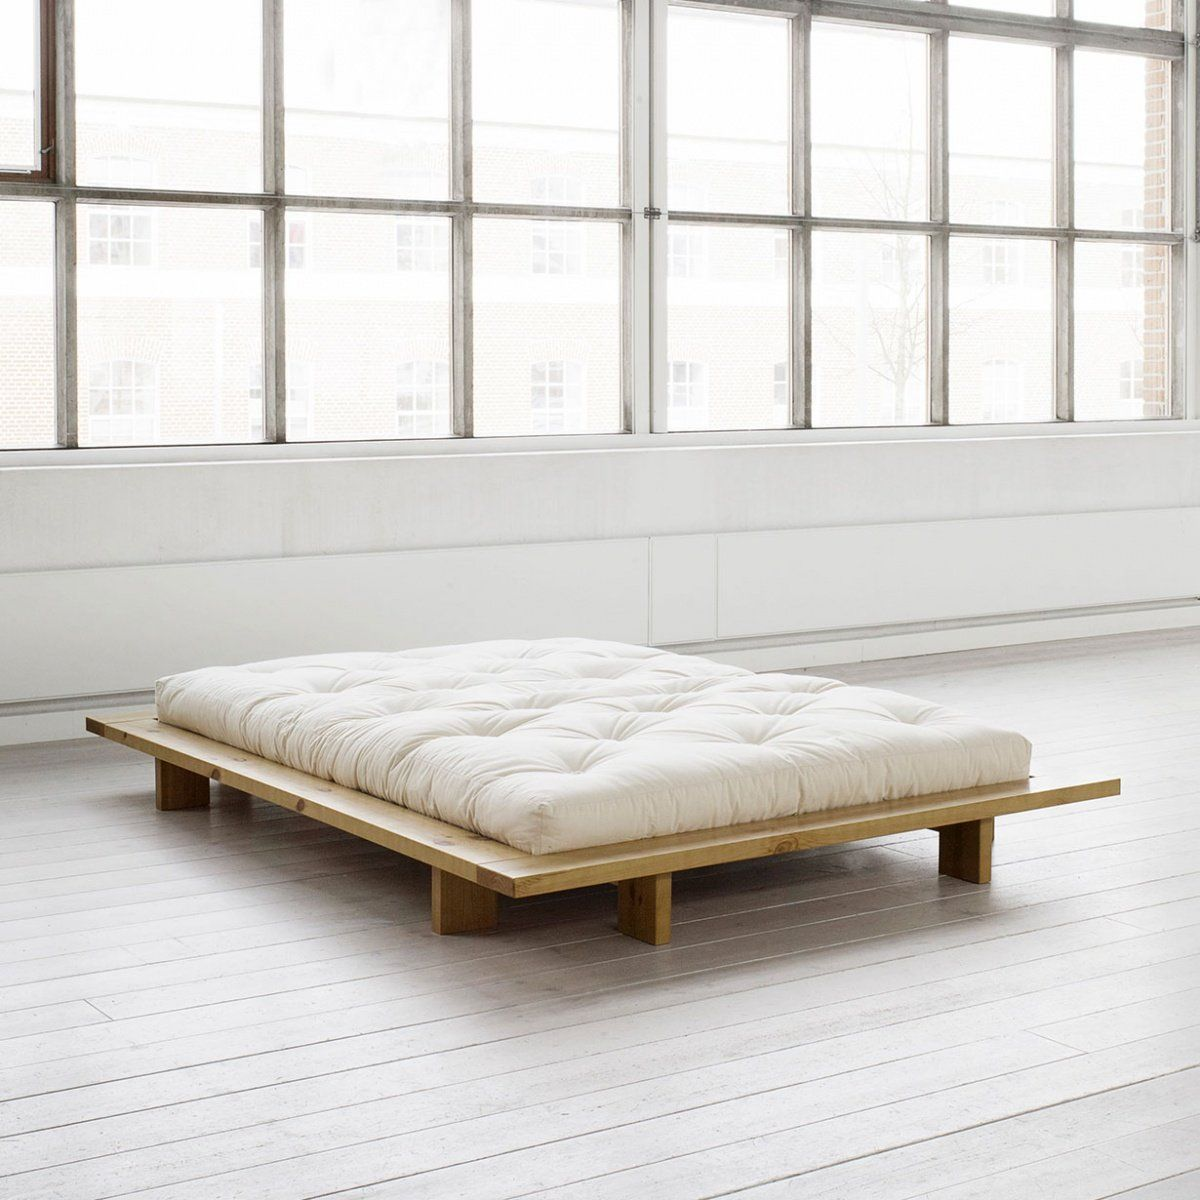 Japan Bed Camas Creativas Futones